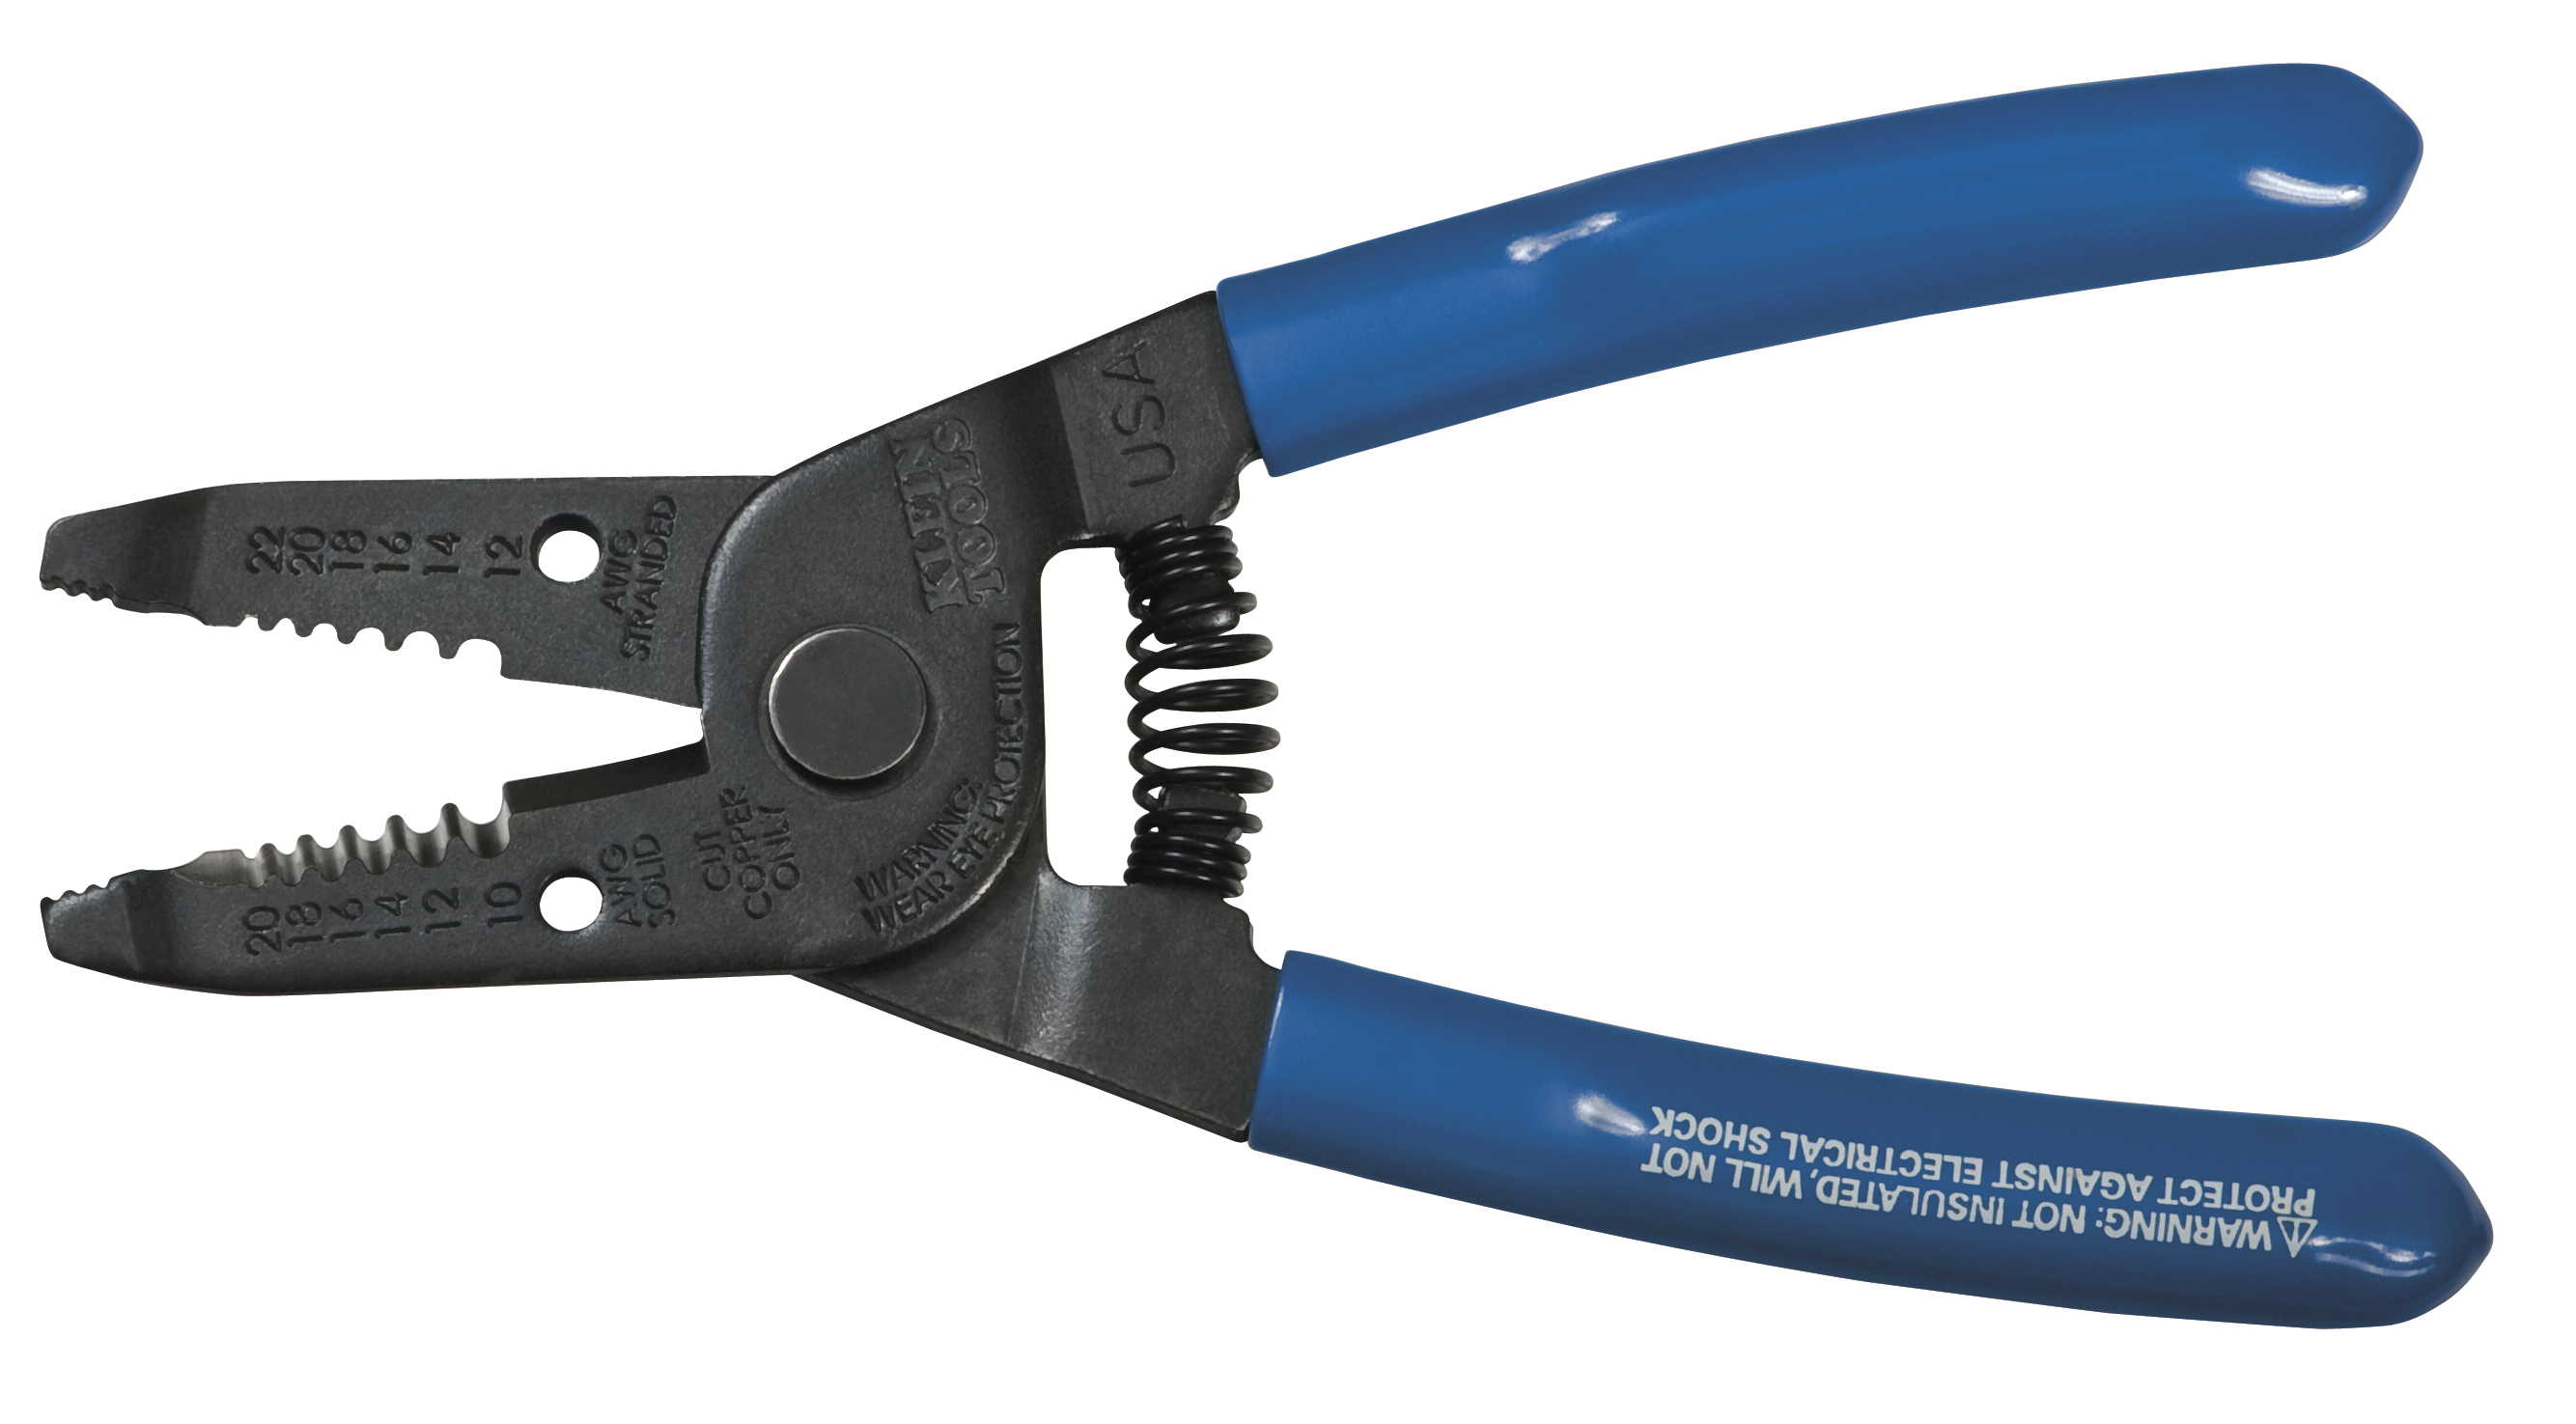 KLEIN 1011 Multi-Purpose Wire Stripper/Cutter